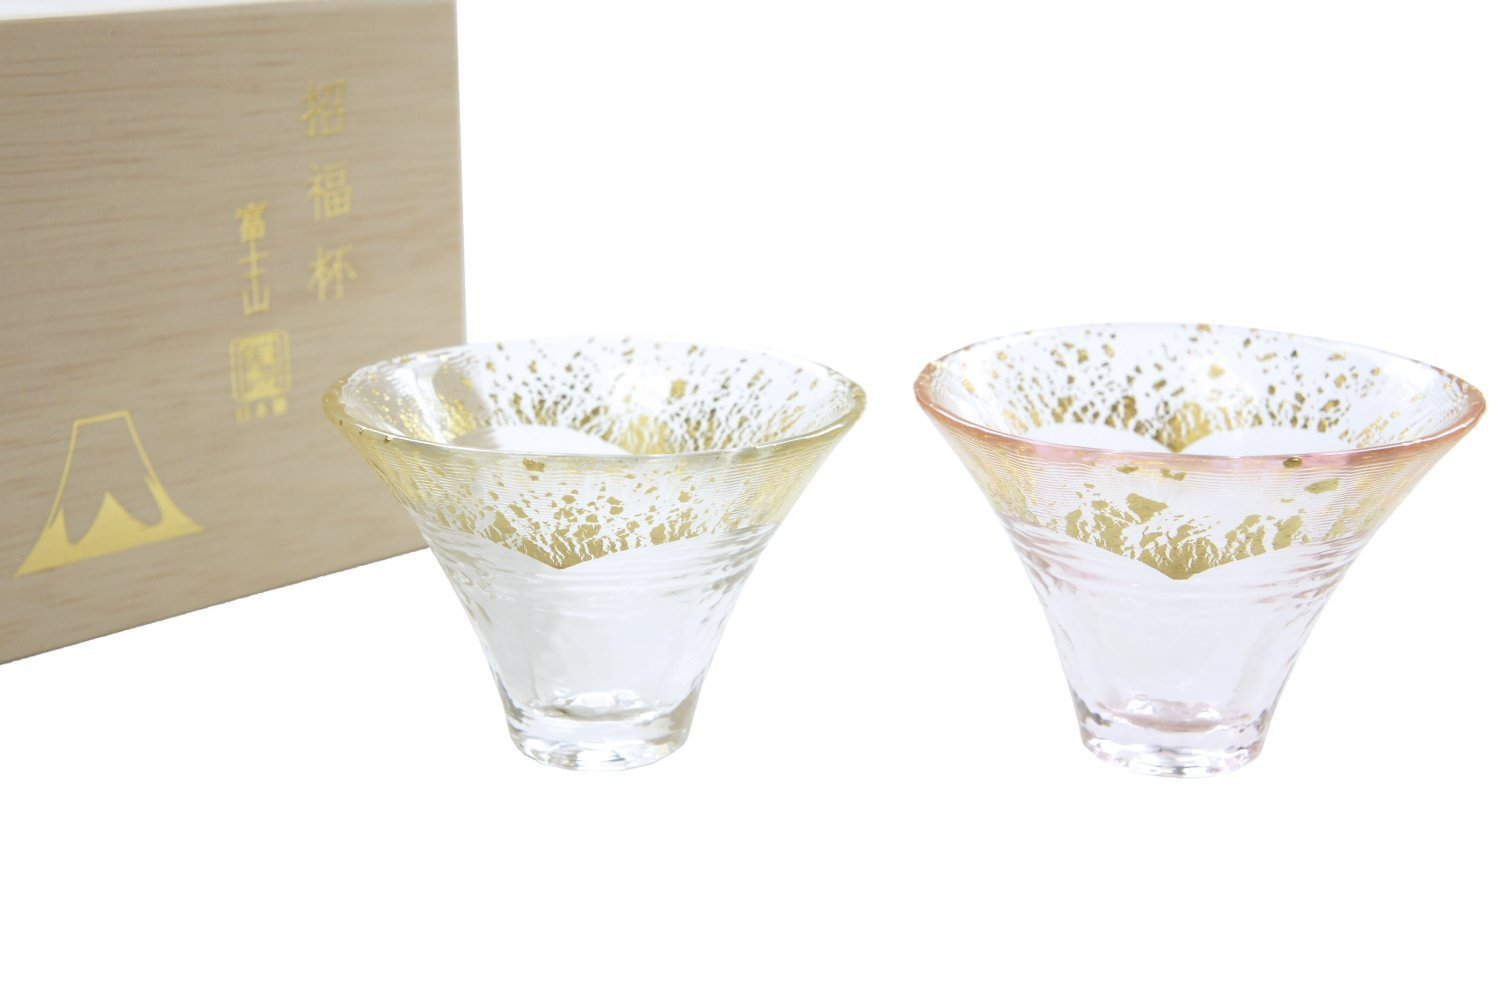 Japanese Lucky Cut Glass Sake Cups A Pair of Mt. Fuji by KIMOTO GLASSWARE